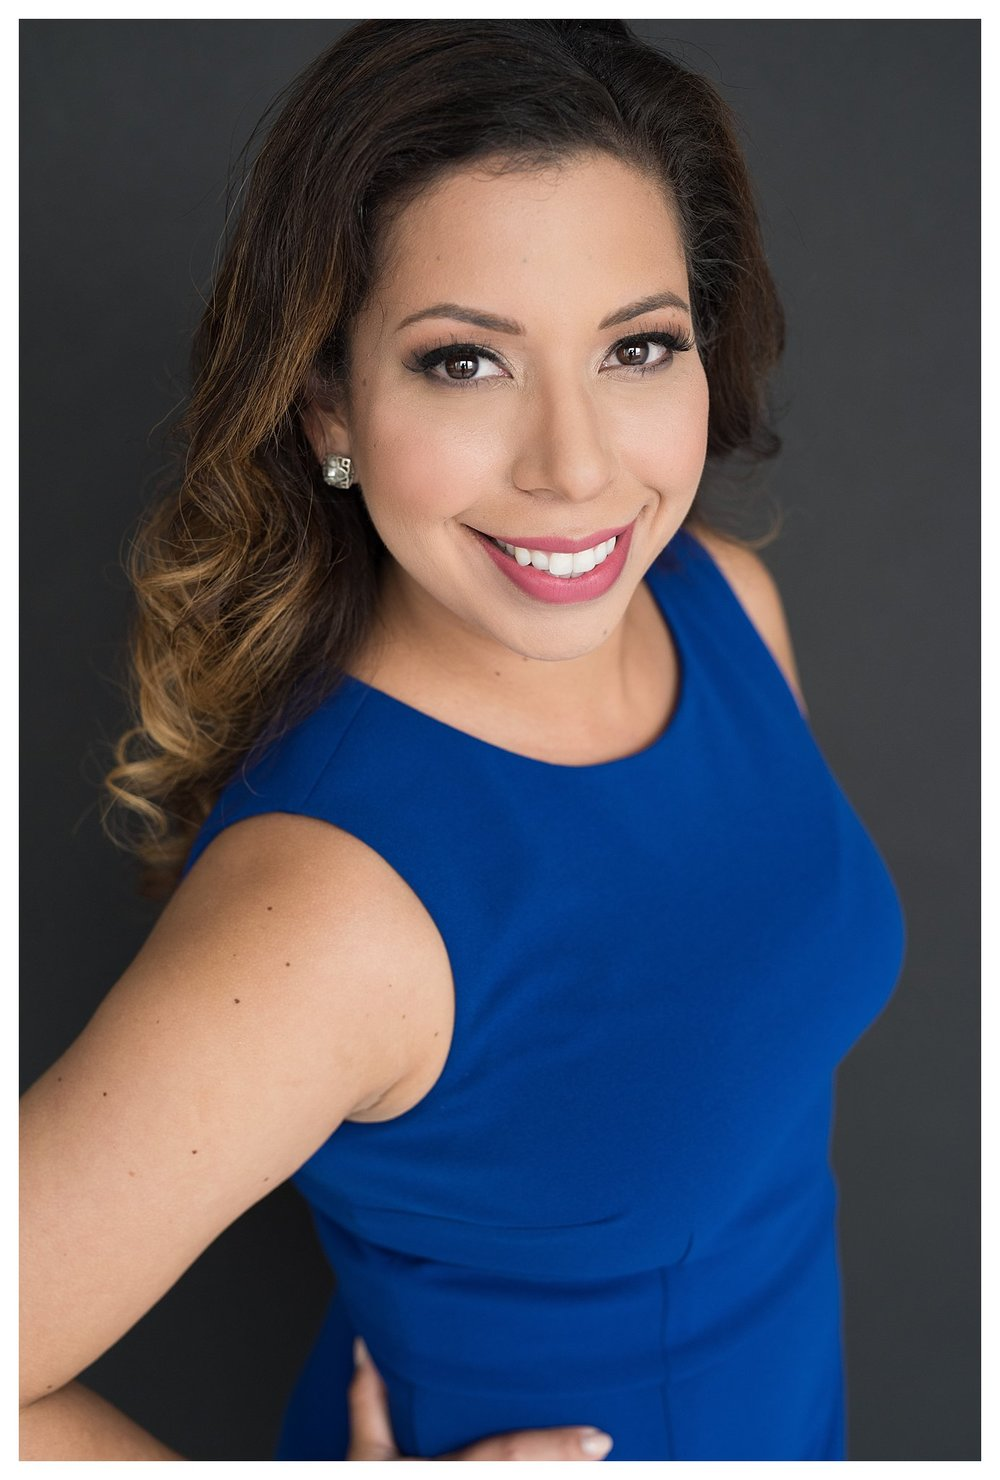 """Professional photographer tip: I photographed Adrienne out of focus from the shoulders down so that the focus was on her eyes. I also made sure there was a bright """"catch light"""" in the eyes so her eyes pop. This creates trust with potential clients viewing the image."""